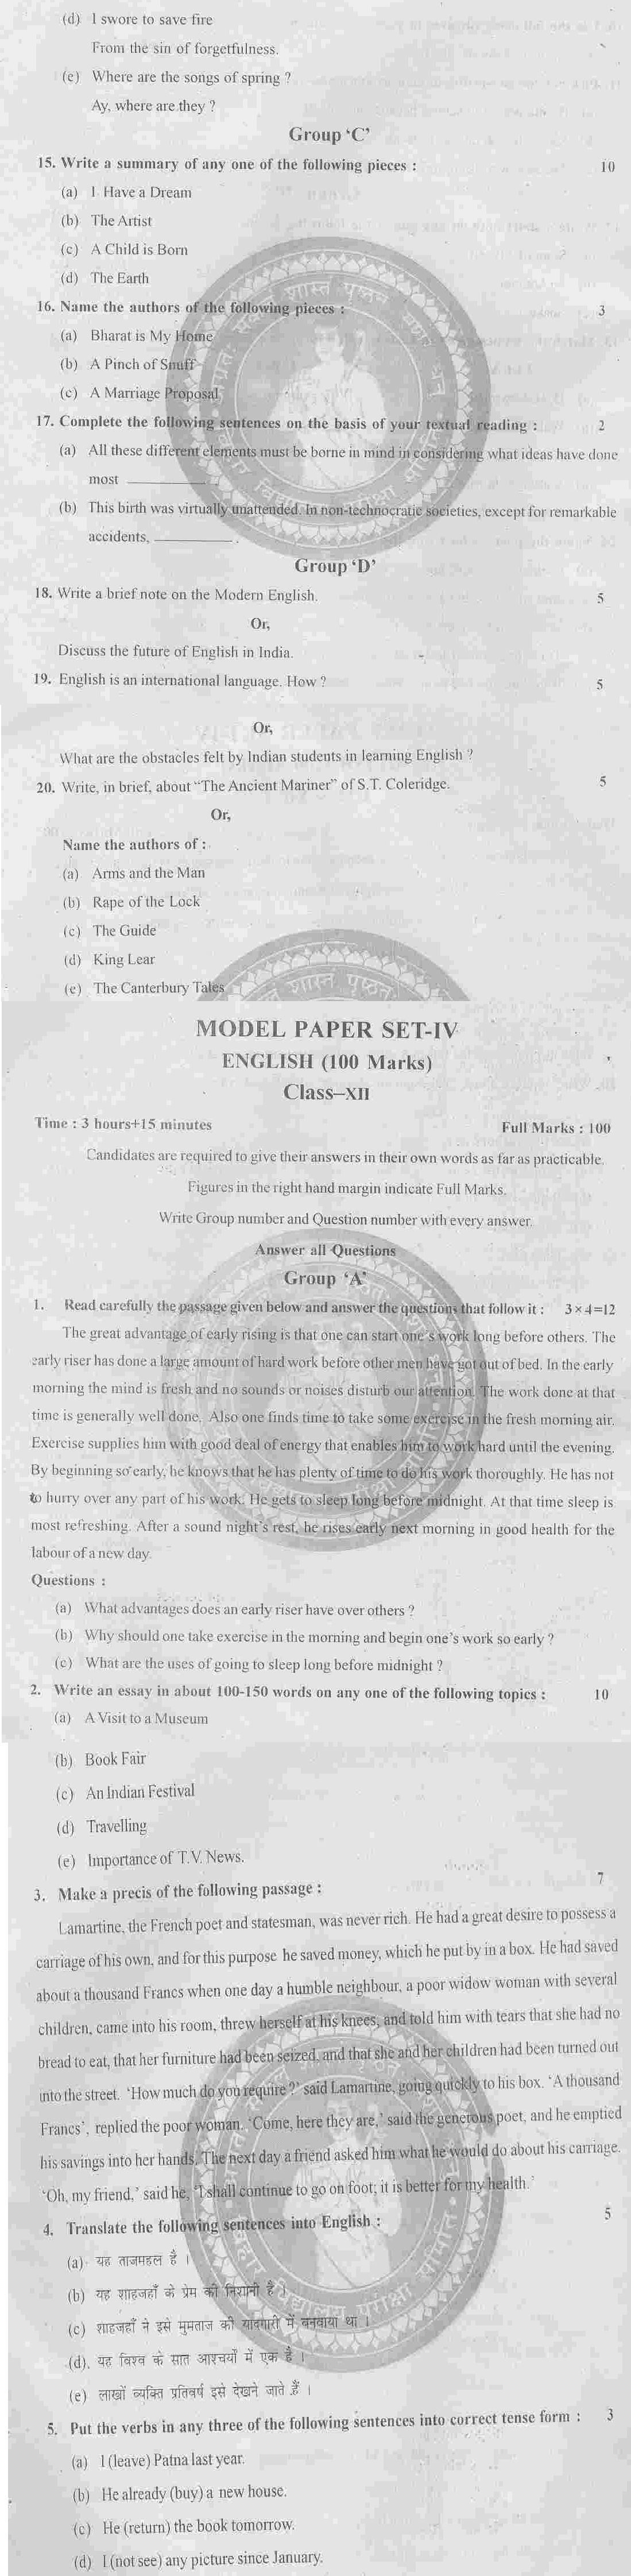 Bihar Board Class XII Humanities Model Question Papers - English